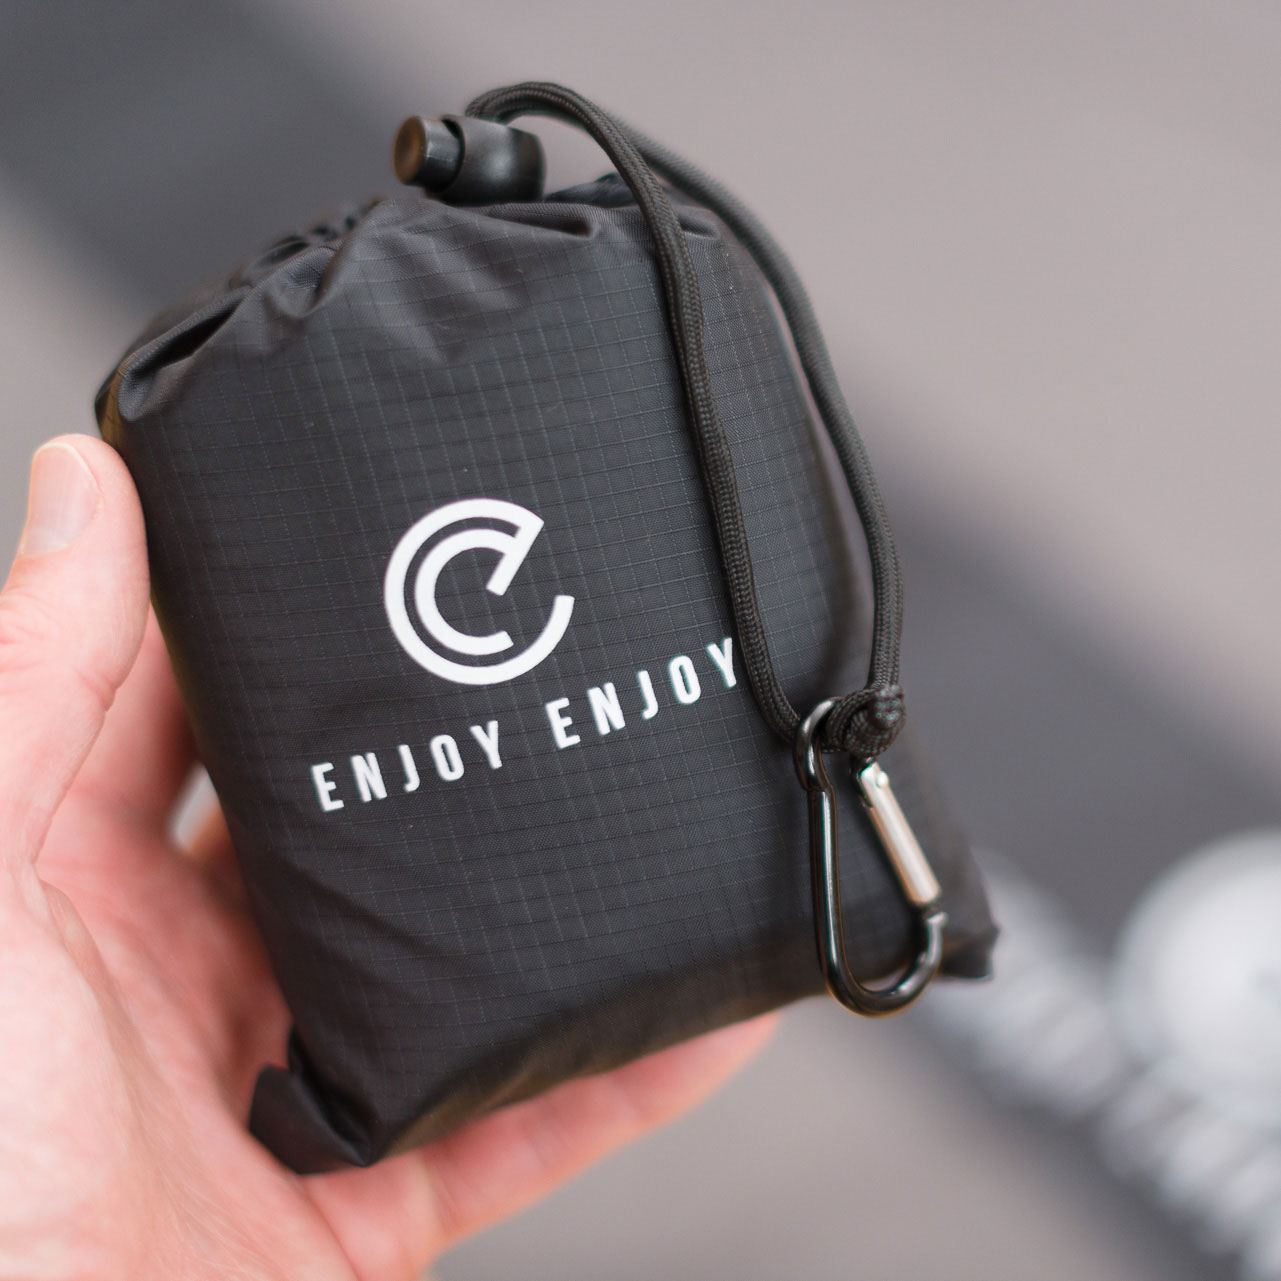 Enjoy Enjoy - Outdoor pocket blanket